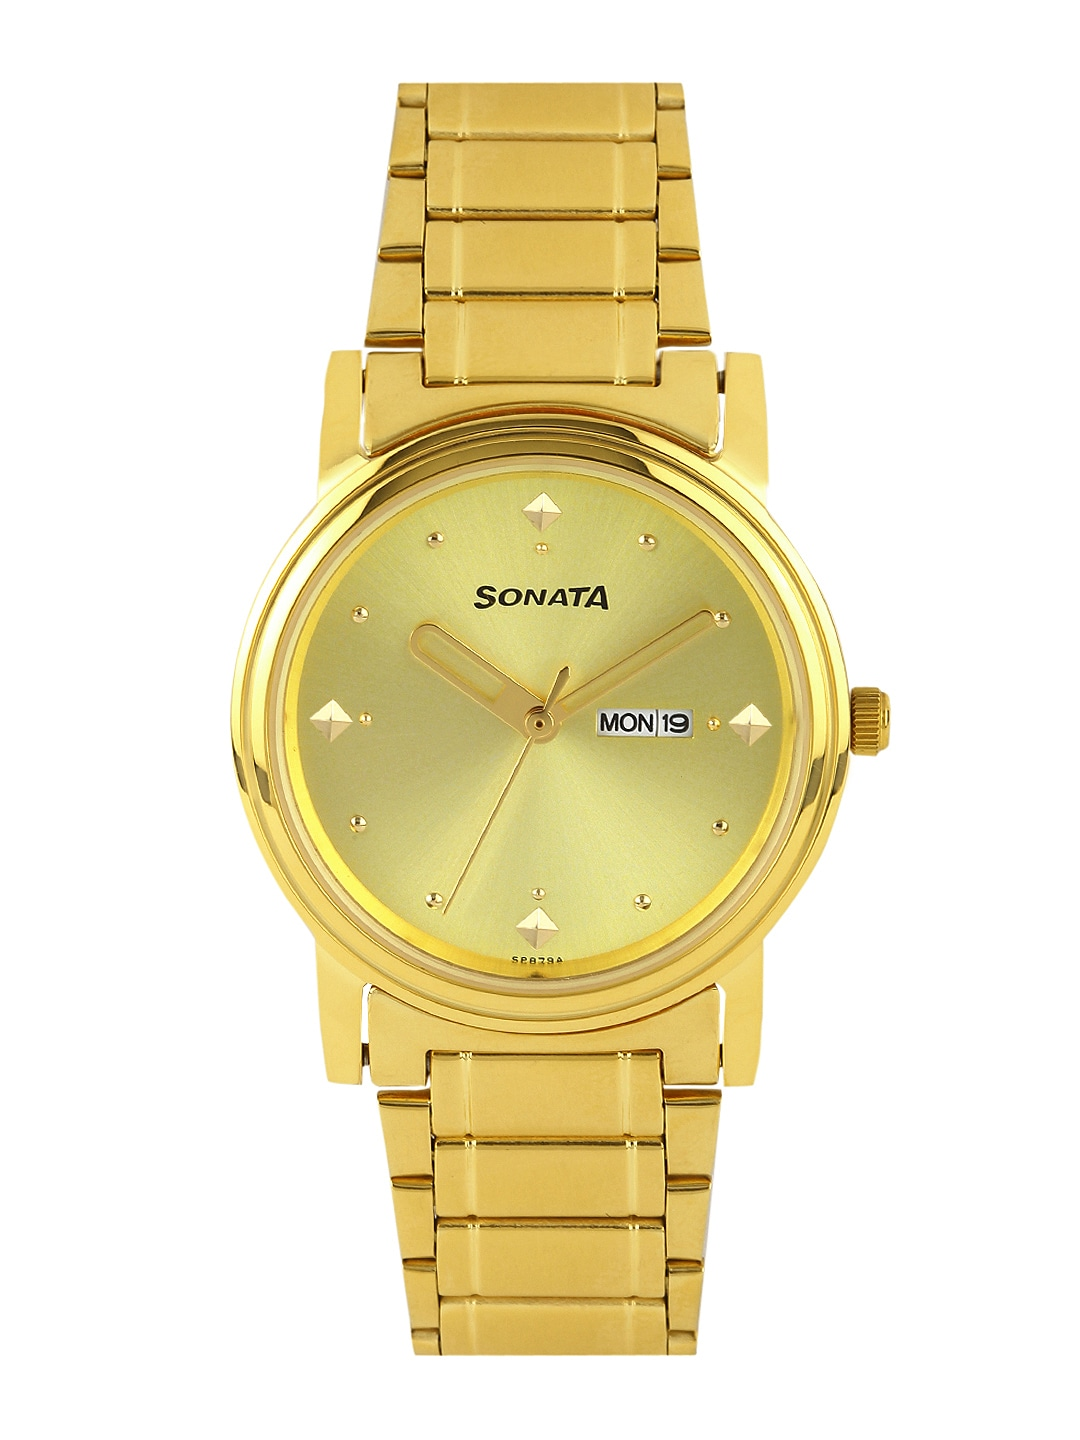 Sonata Men Gold-Toned Dial Watch NC1141YM13